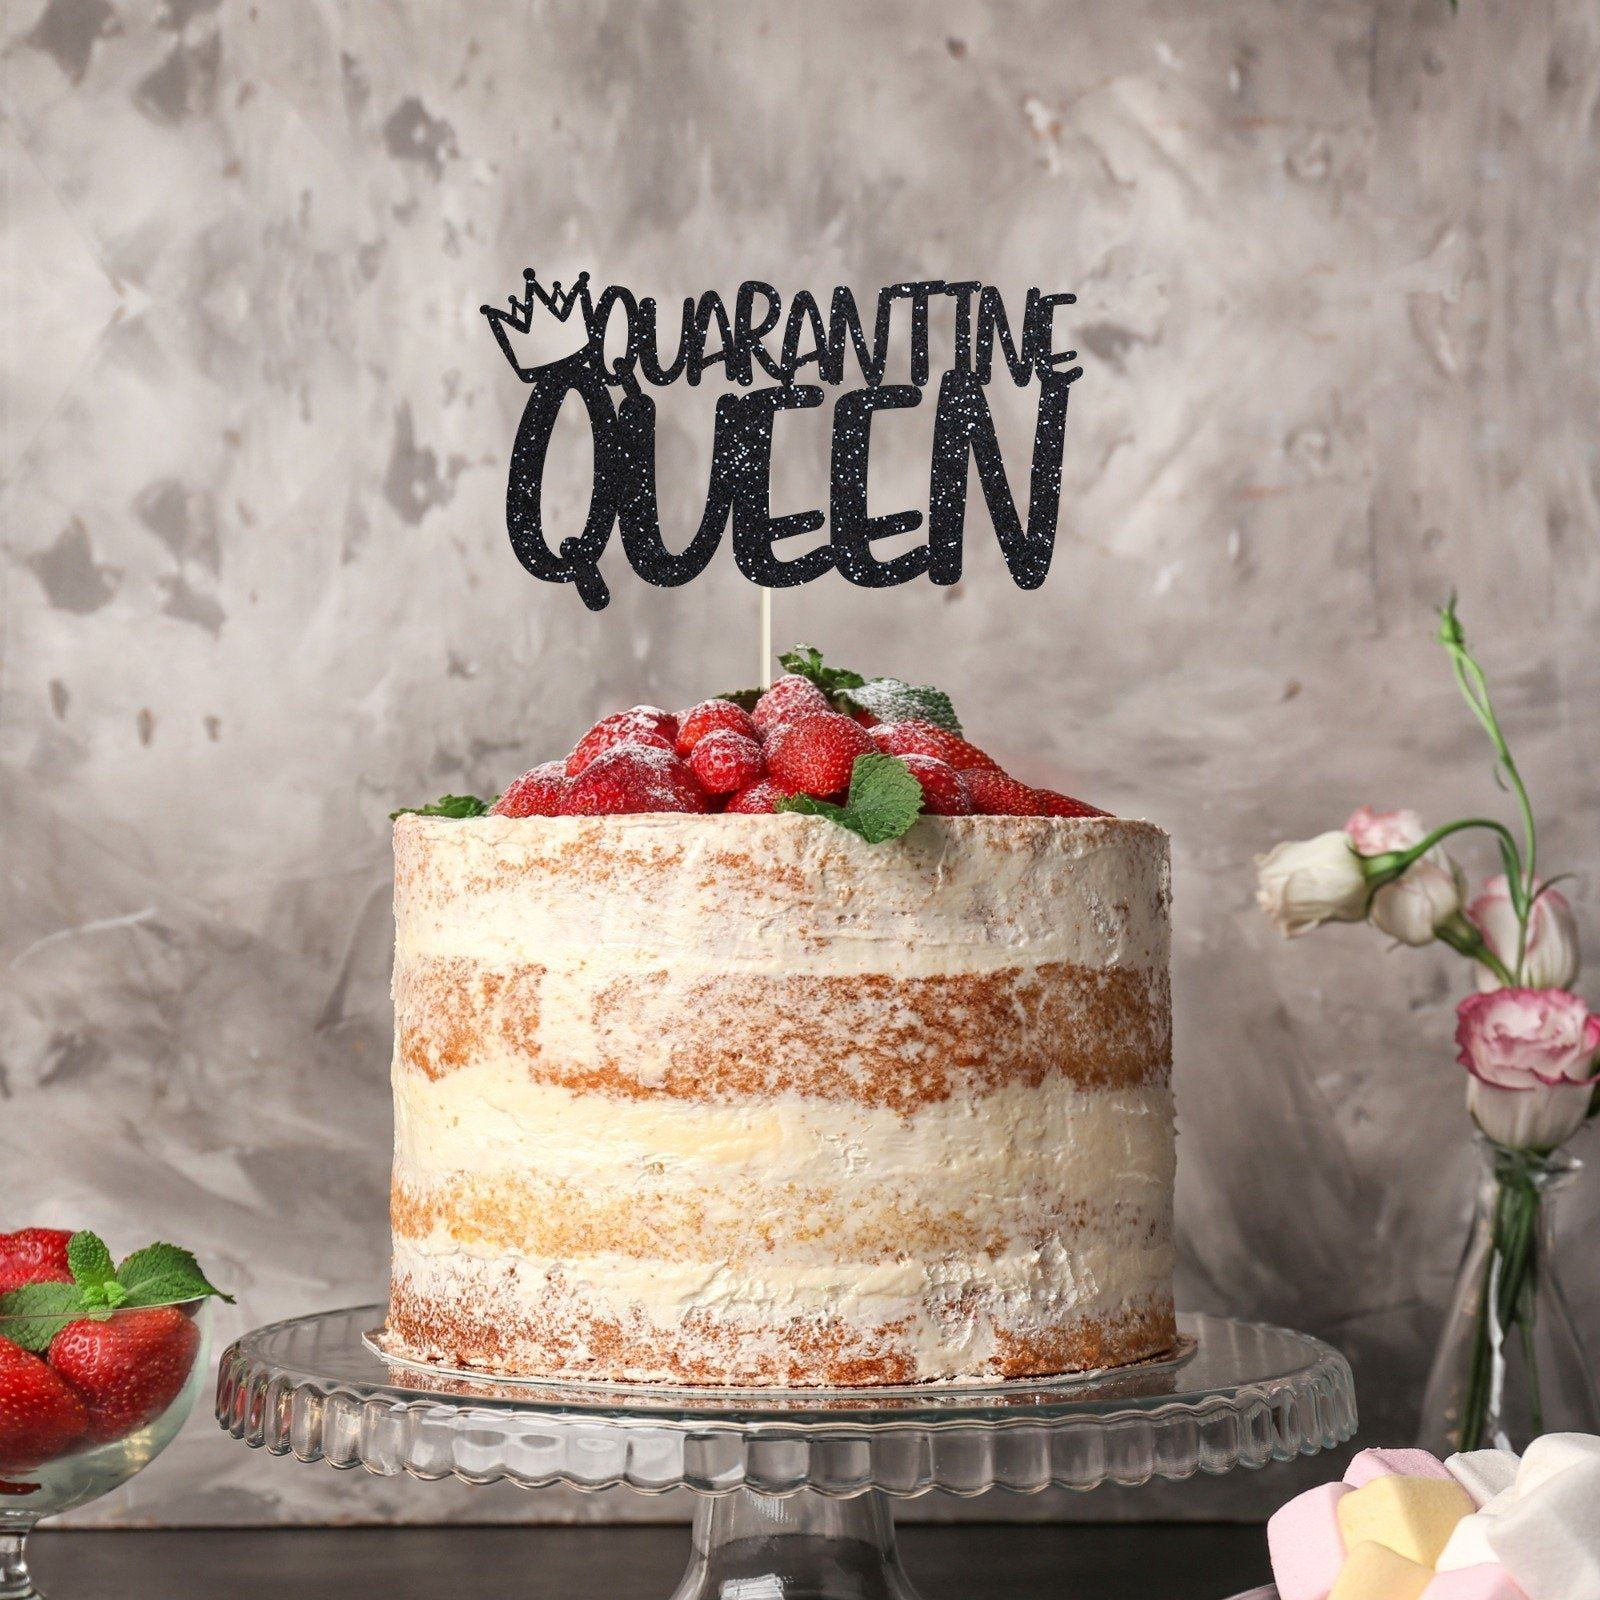 Marvelous Quarantine Queen Birthday Cake Topper Women Birthday Social Funny Birthday Cards Online Fluifree Goldxyz